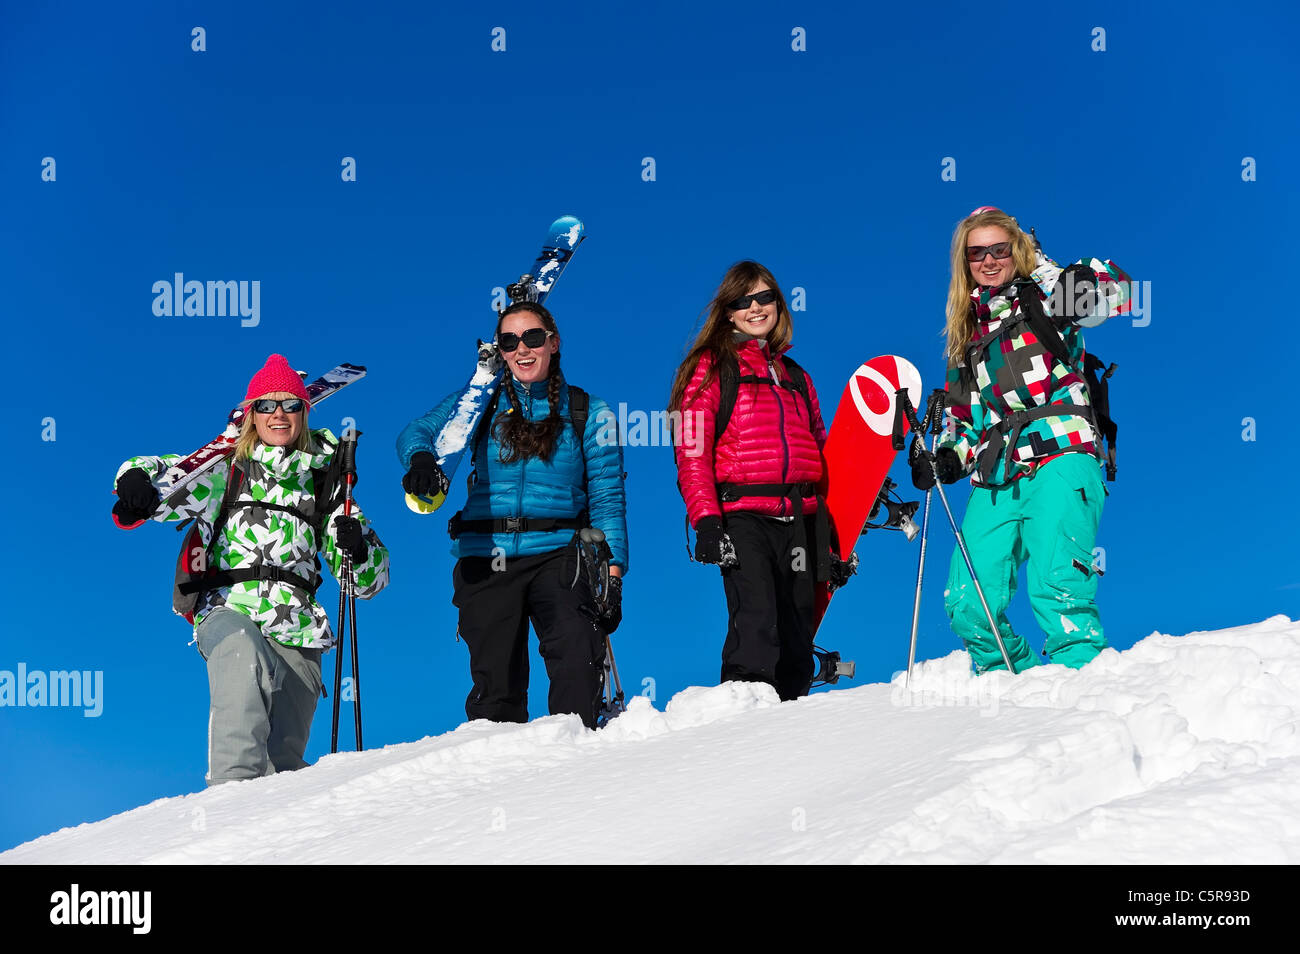 The girls having fun on a winter sports holiday. Stock Photo